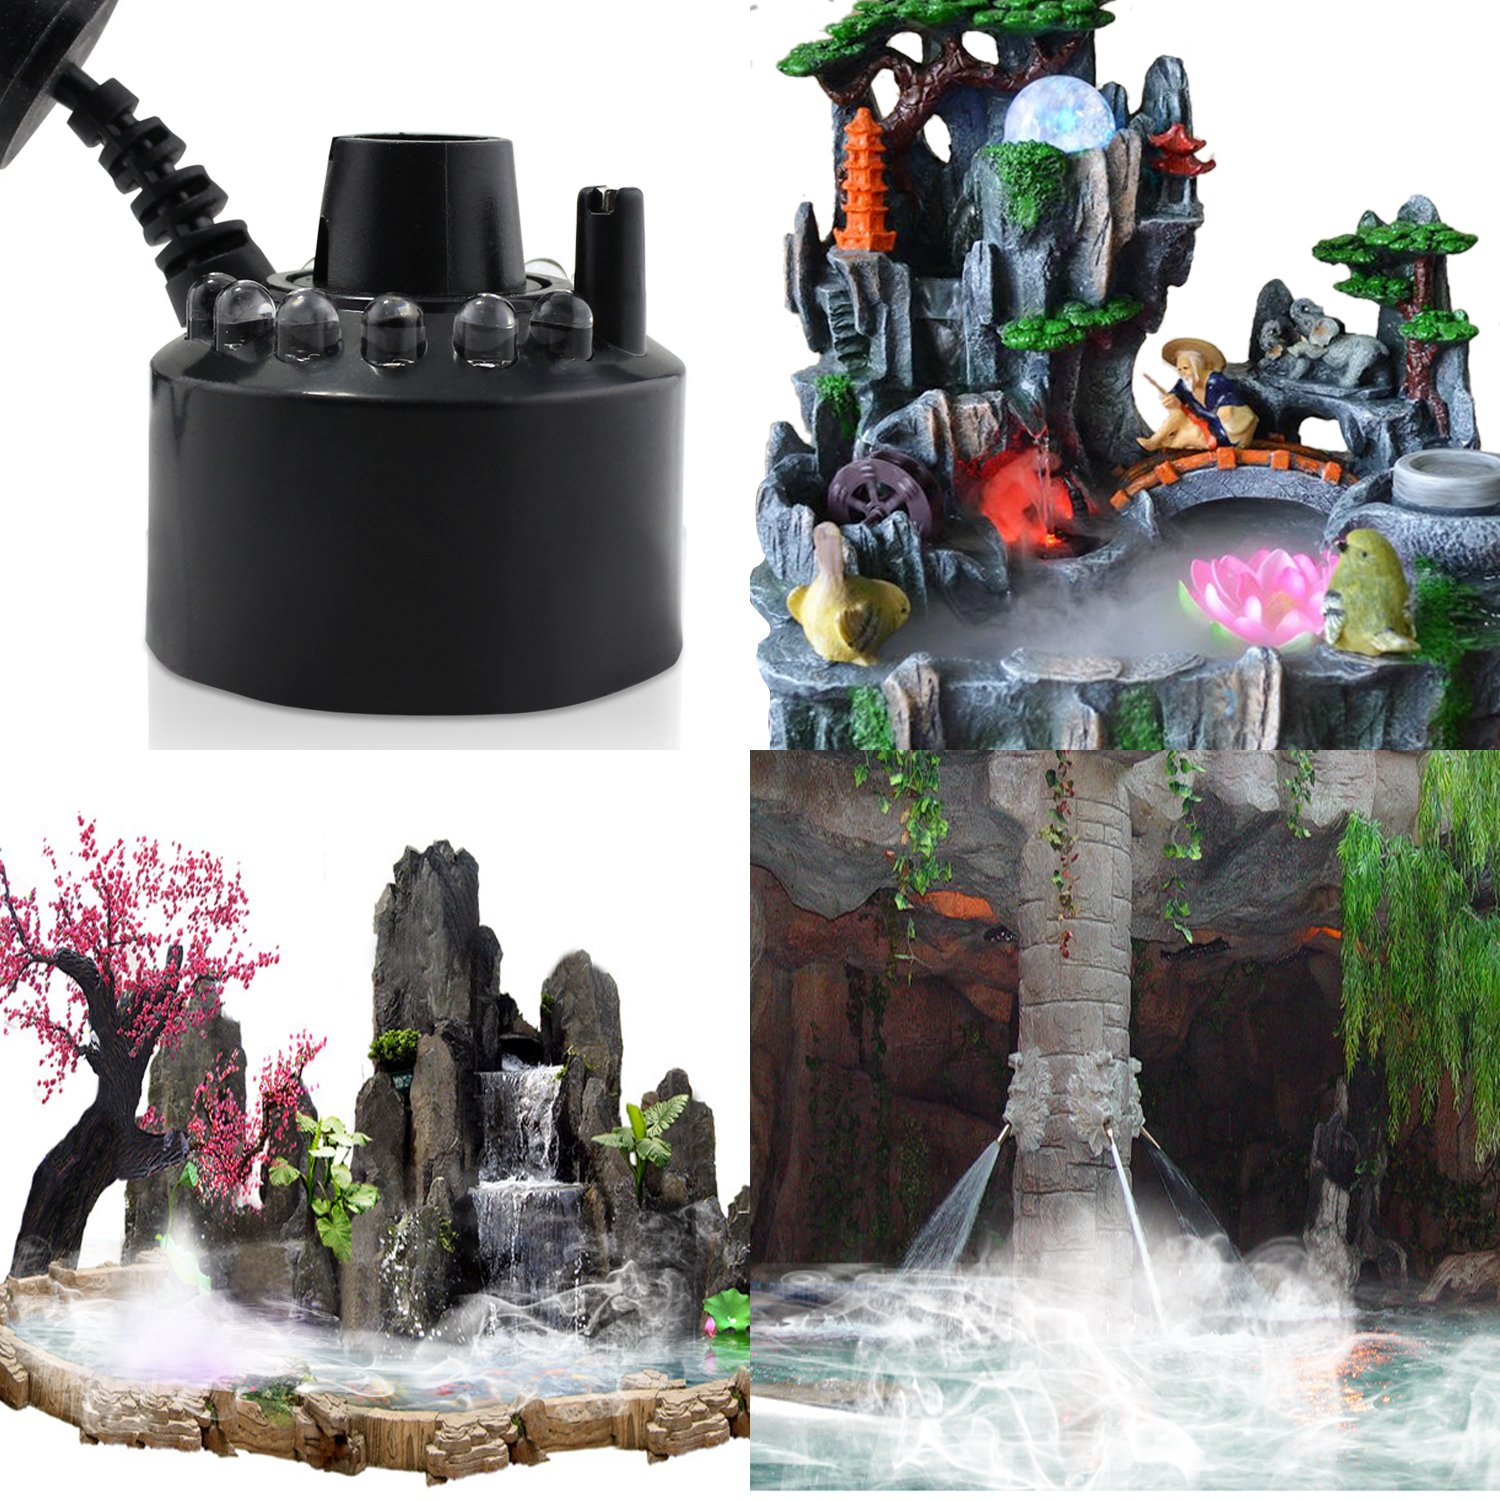 ESUMIC 12LED Mist Maker Fogger Water Fountian Pond Air Humidifier (Black)